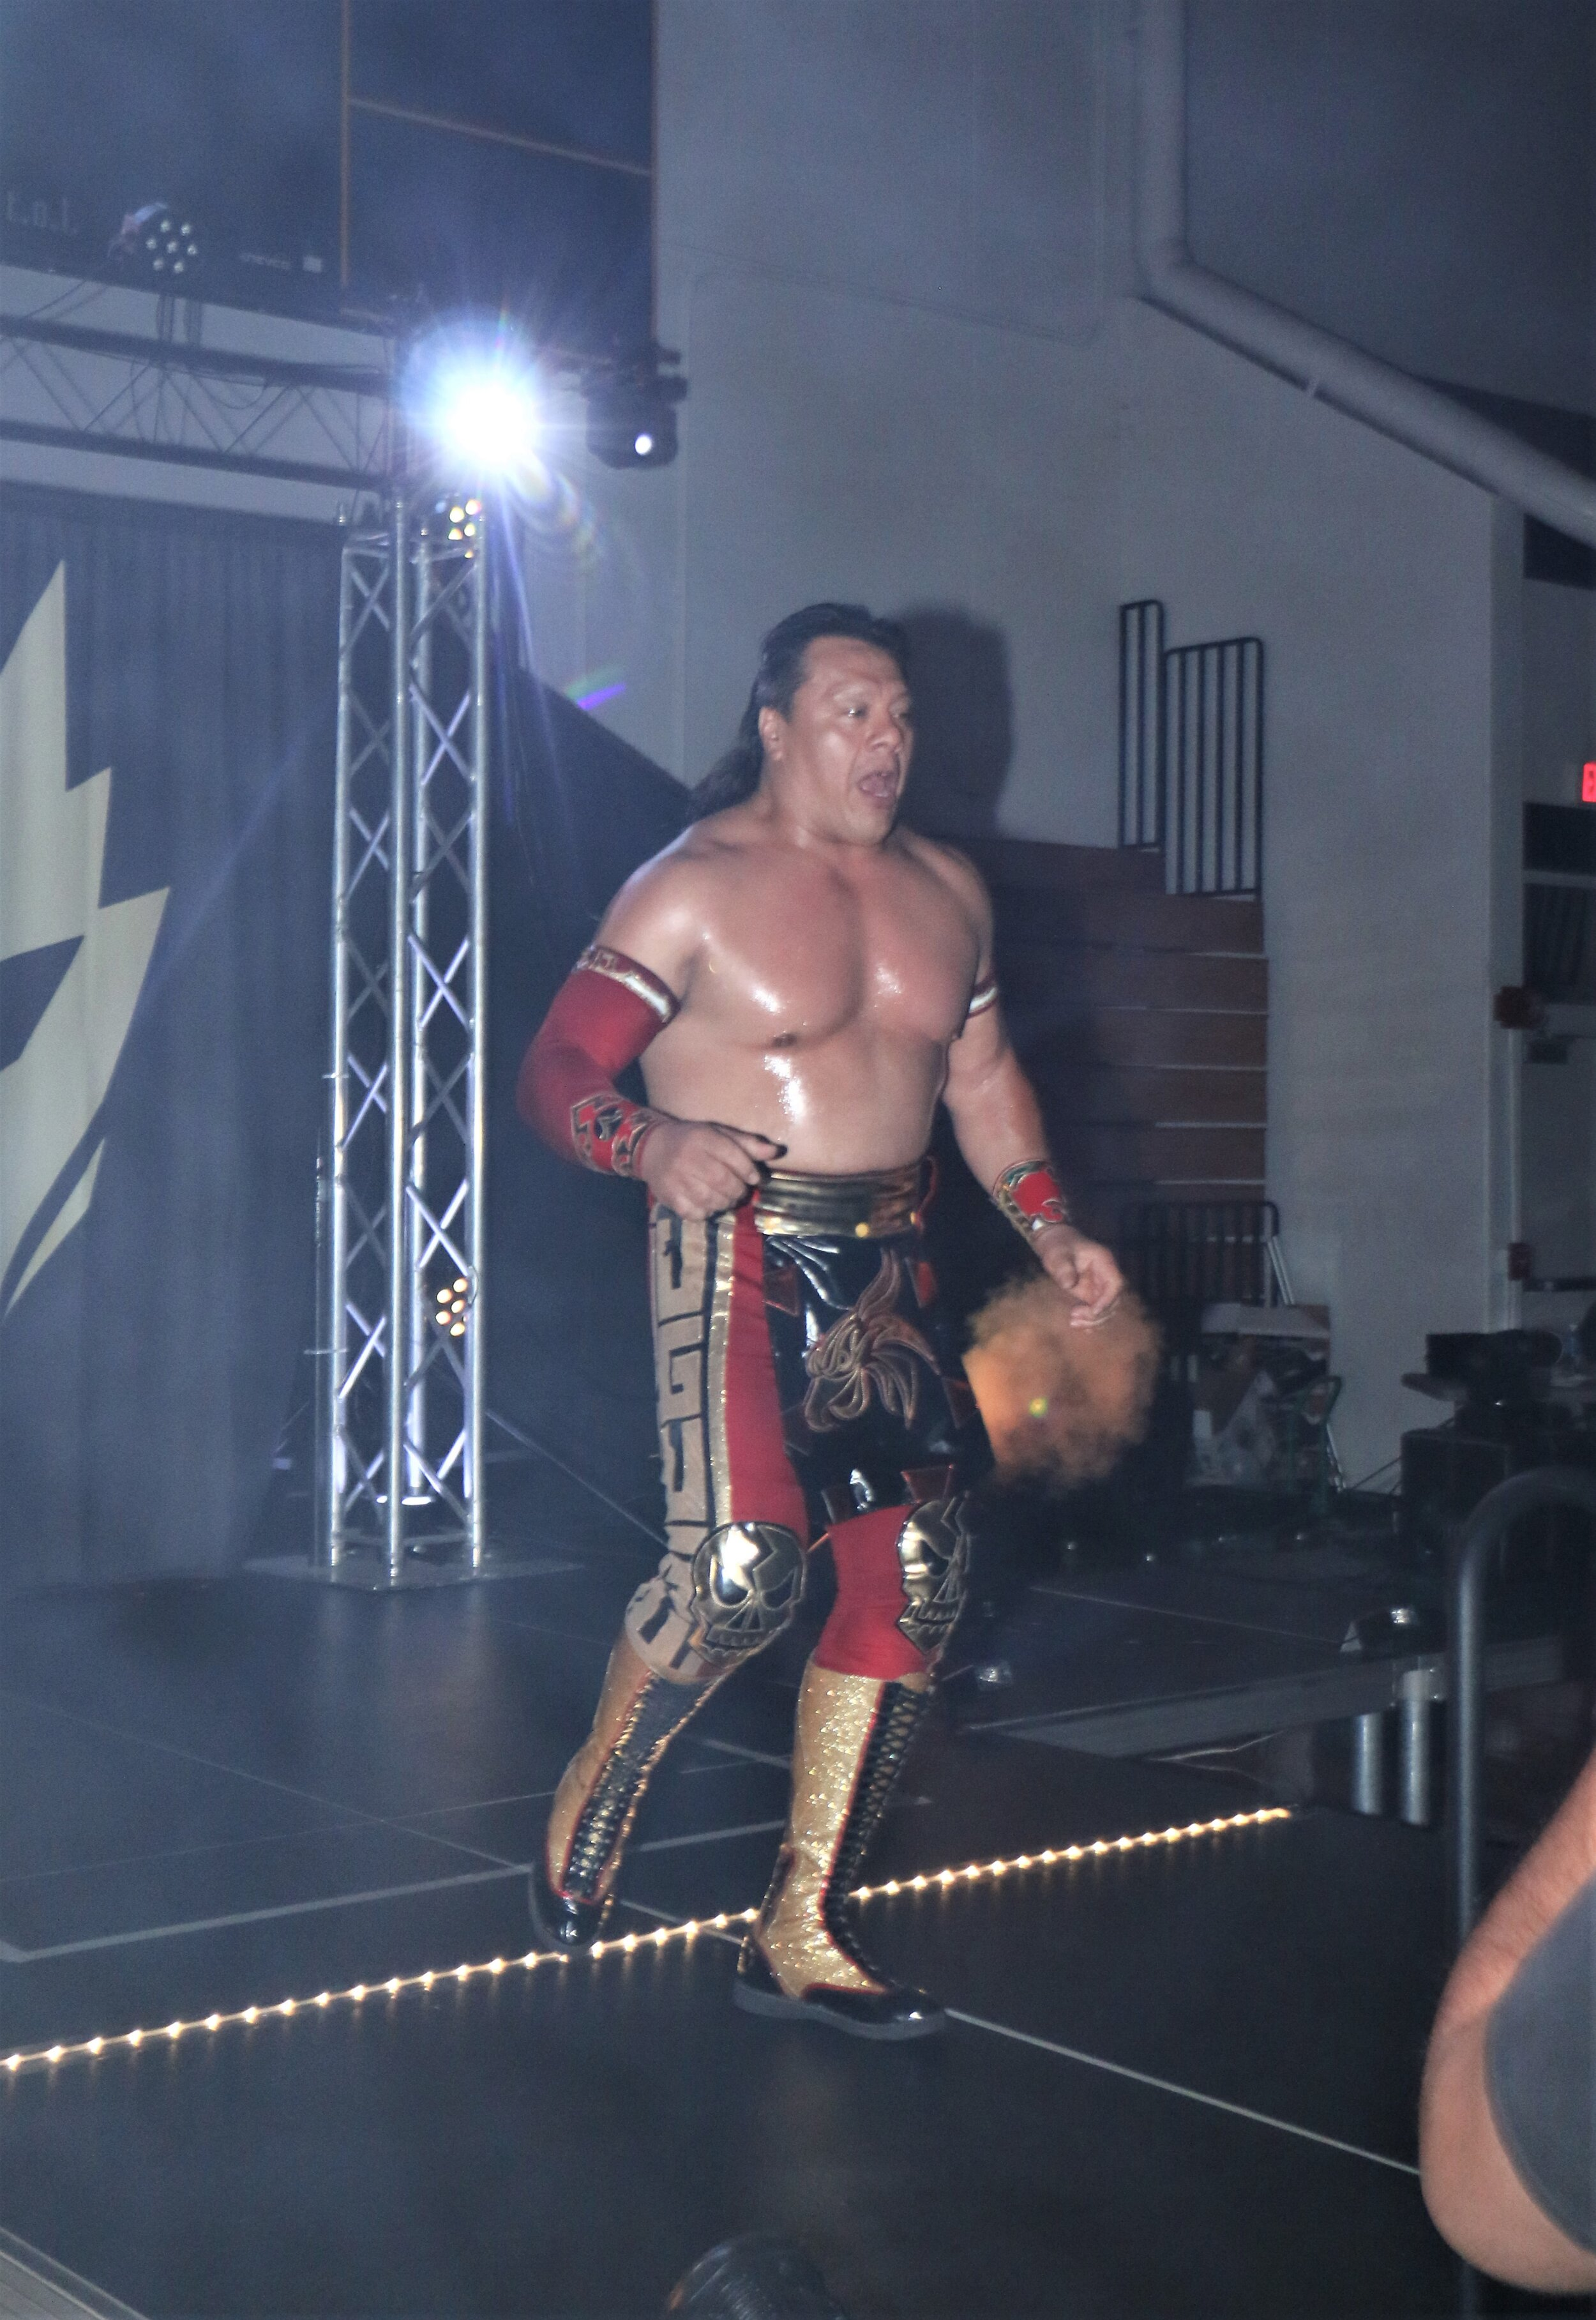 Ultimo Guerrero enters the arena for the 3-way match.